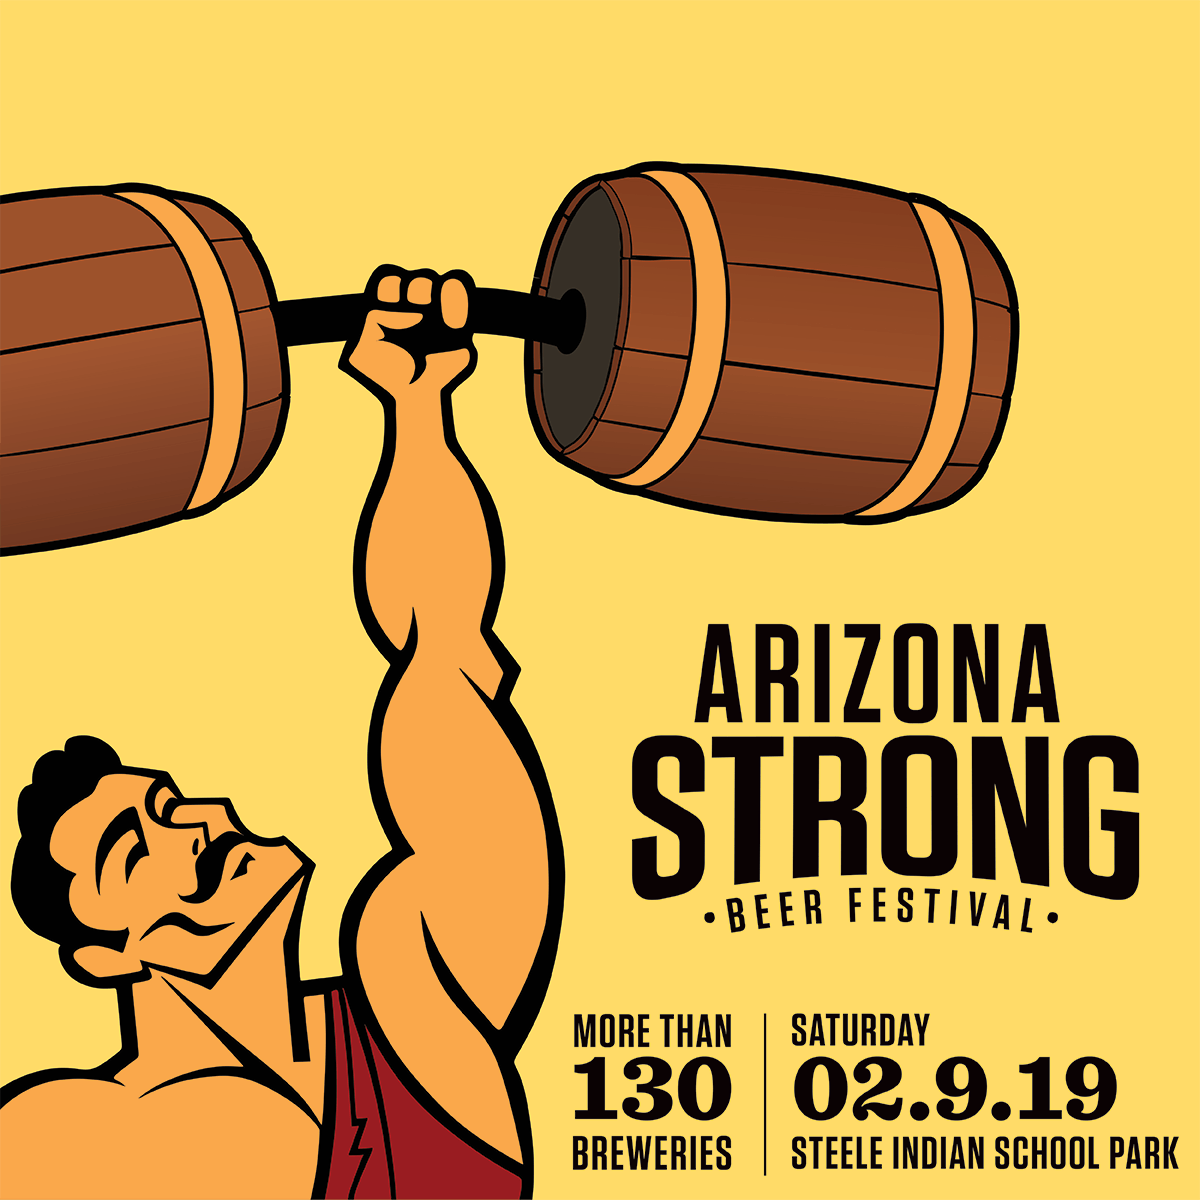 19th Arizona Strong Beer Festival